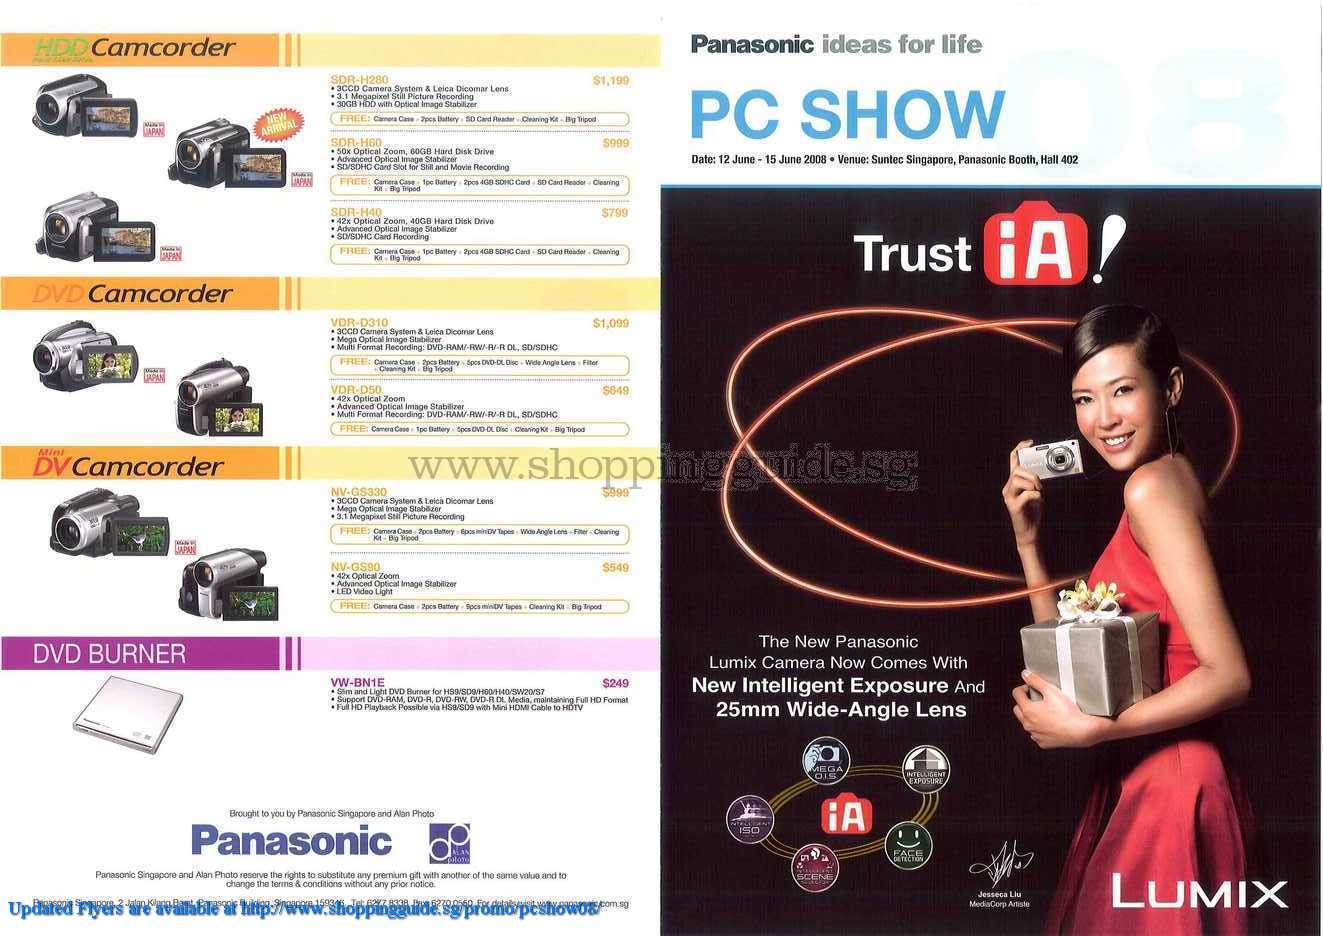 PC Show 2008 price list image brochure of Panasonic Camcorder ShoppingGuide.SG-PcShow08-141